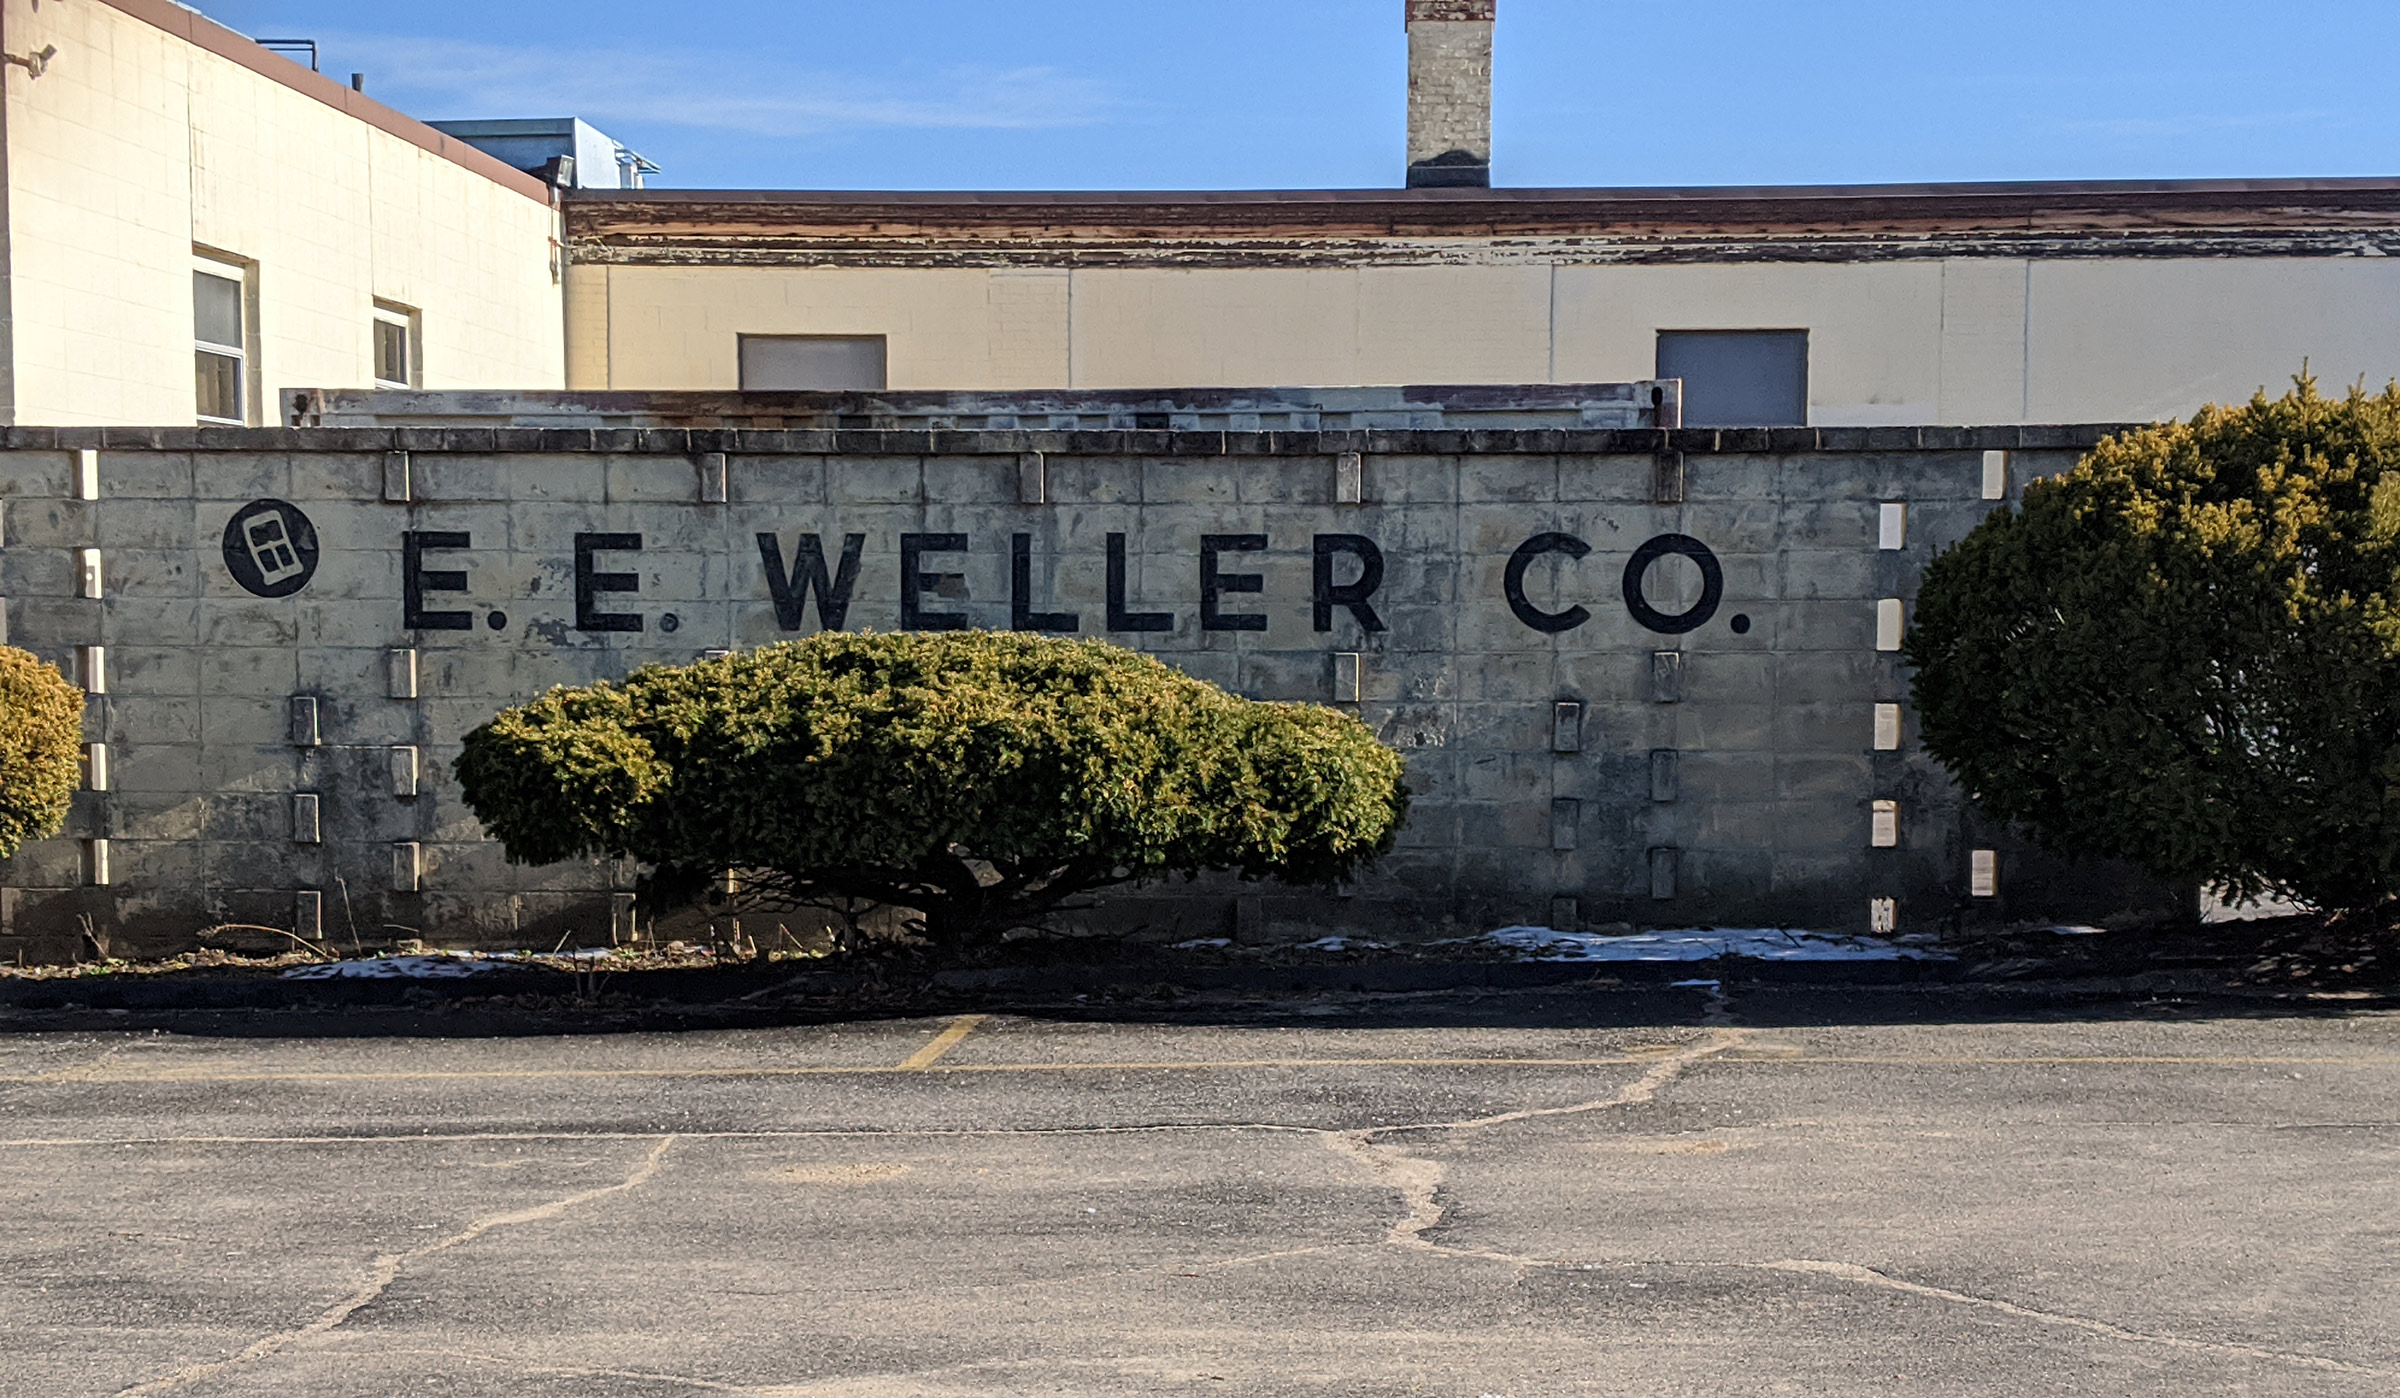 EE. Weller Co.